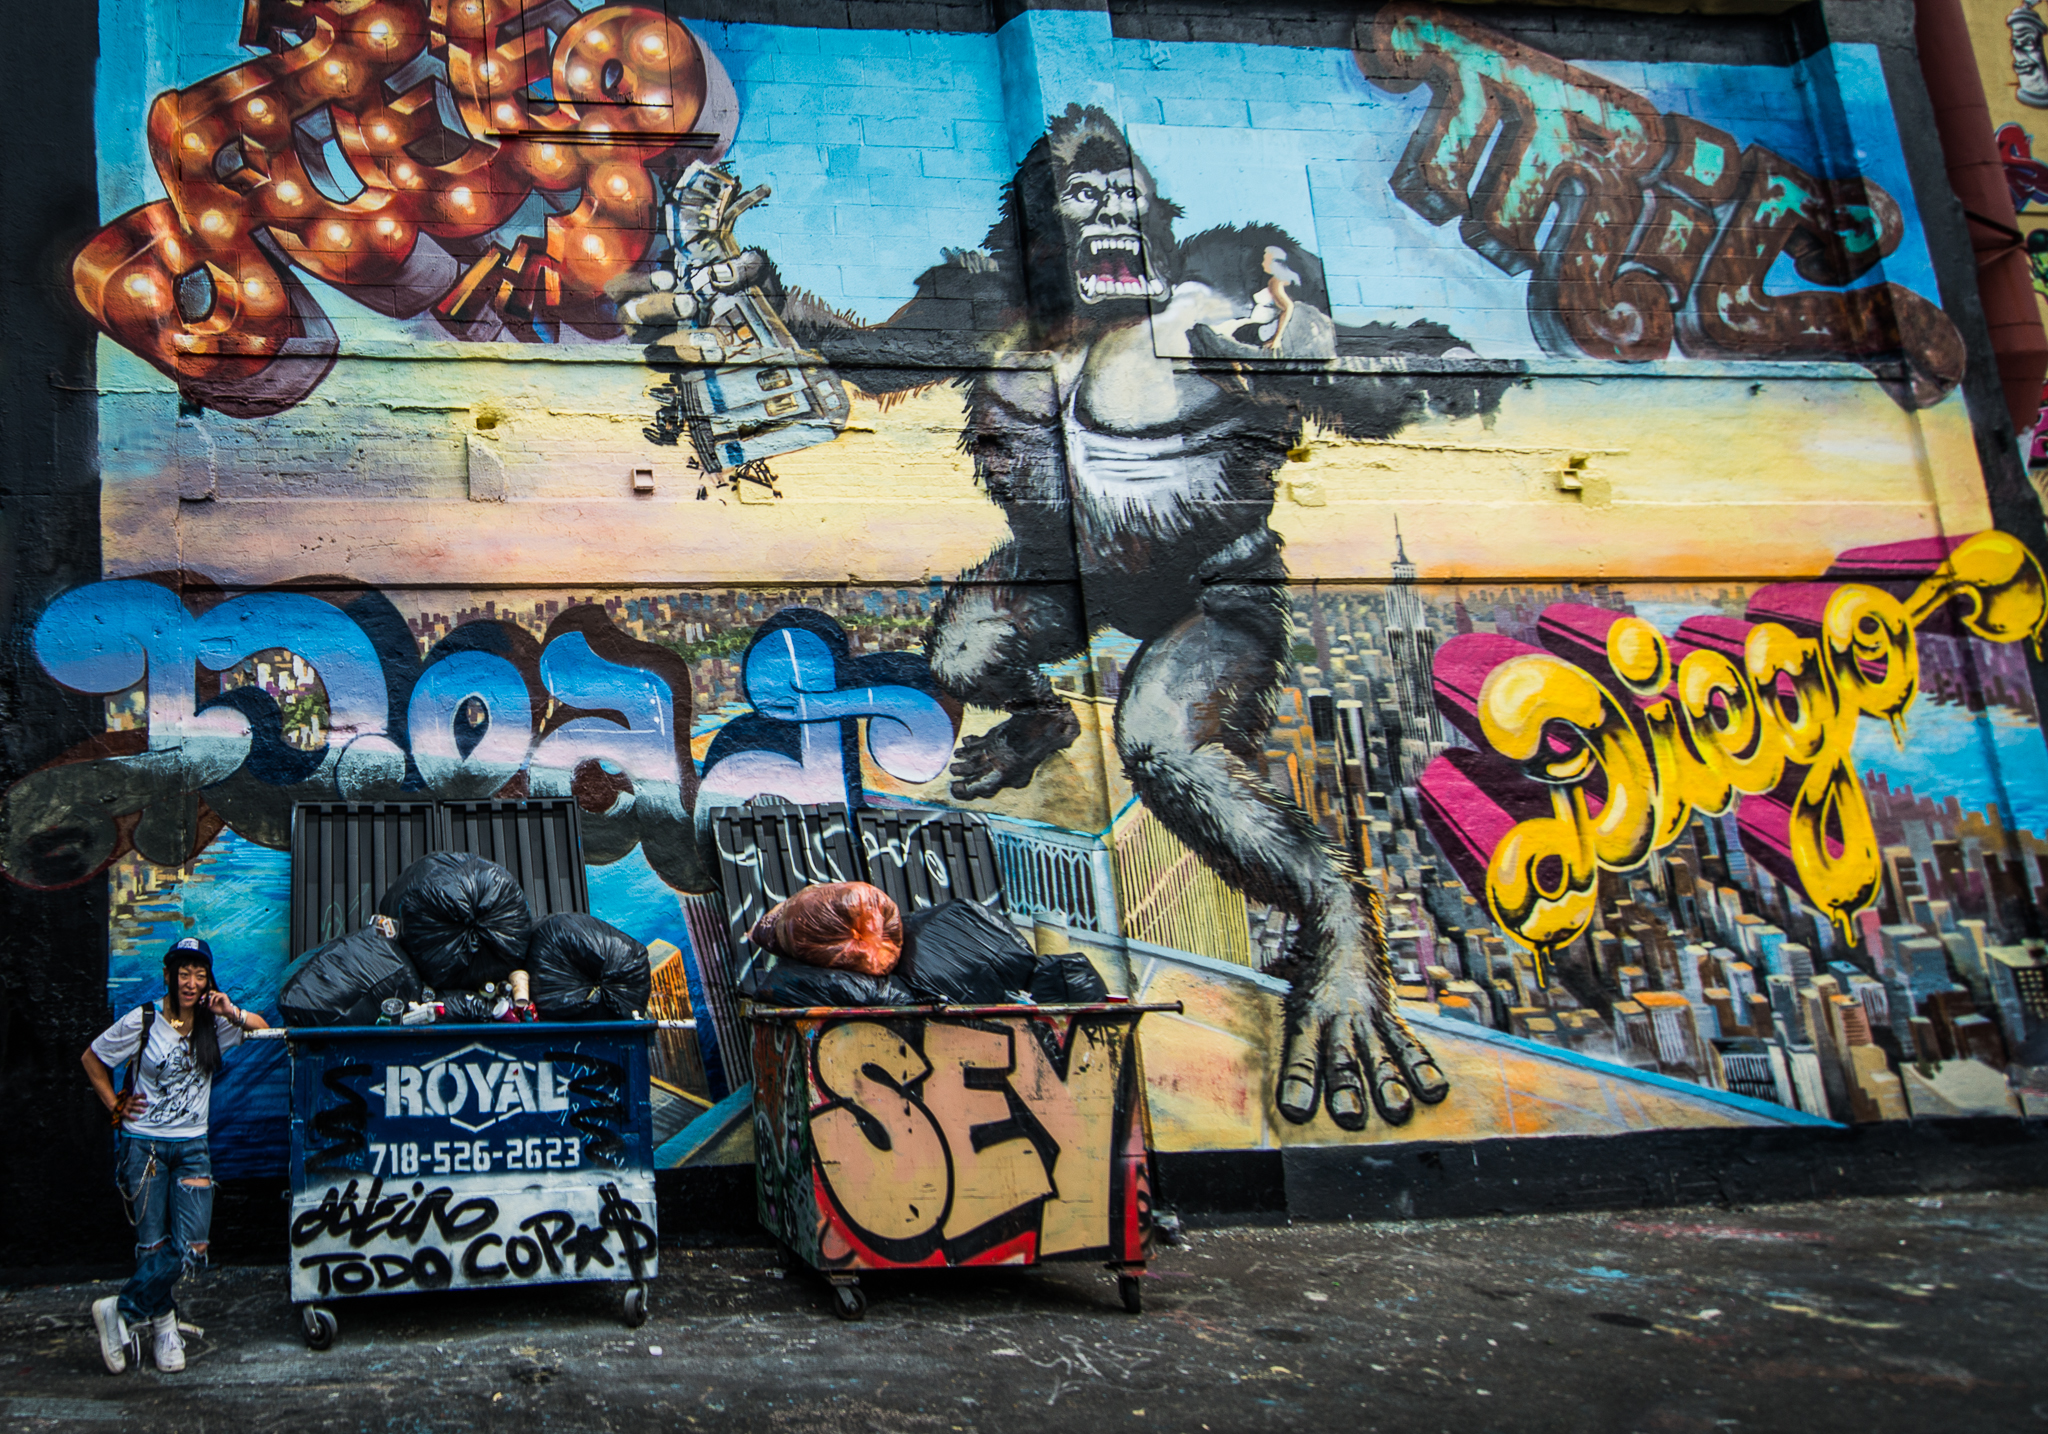 5pointz New york streetphoto 2013 850px-2